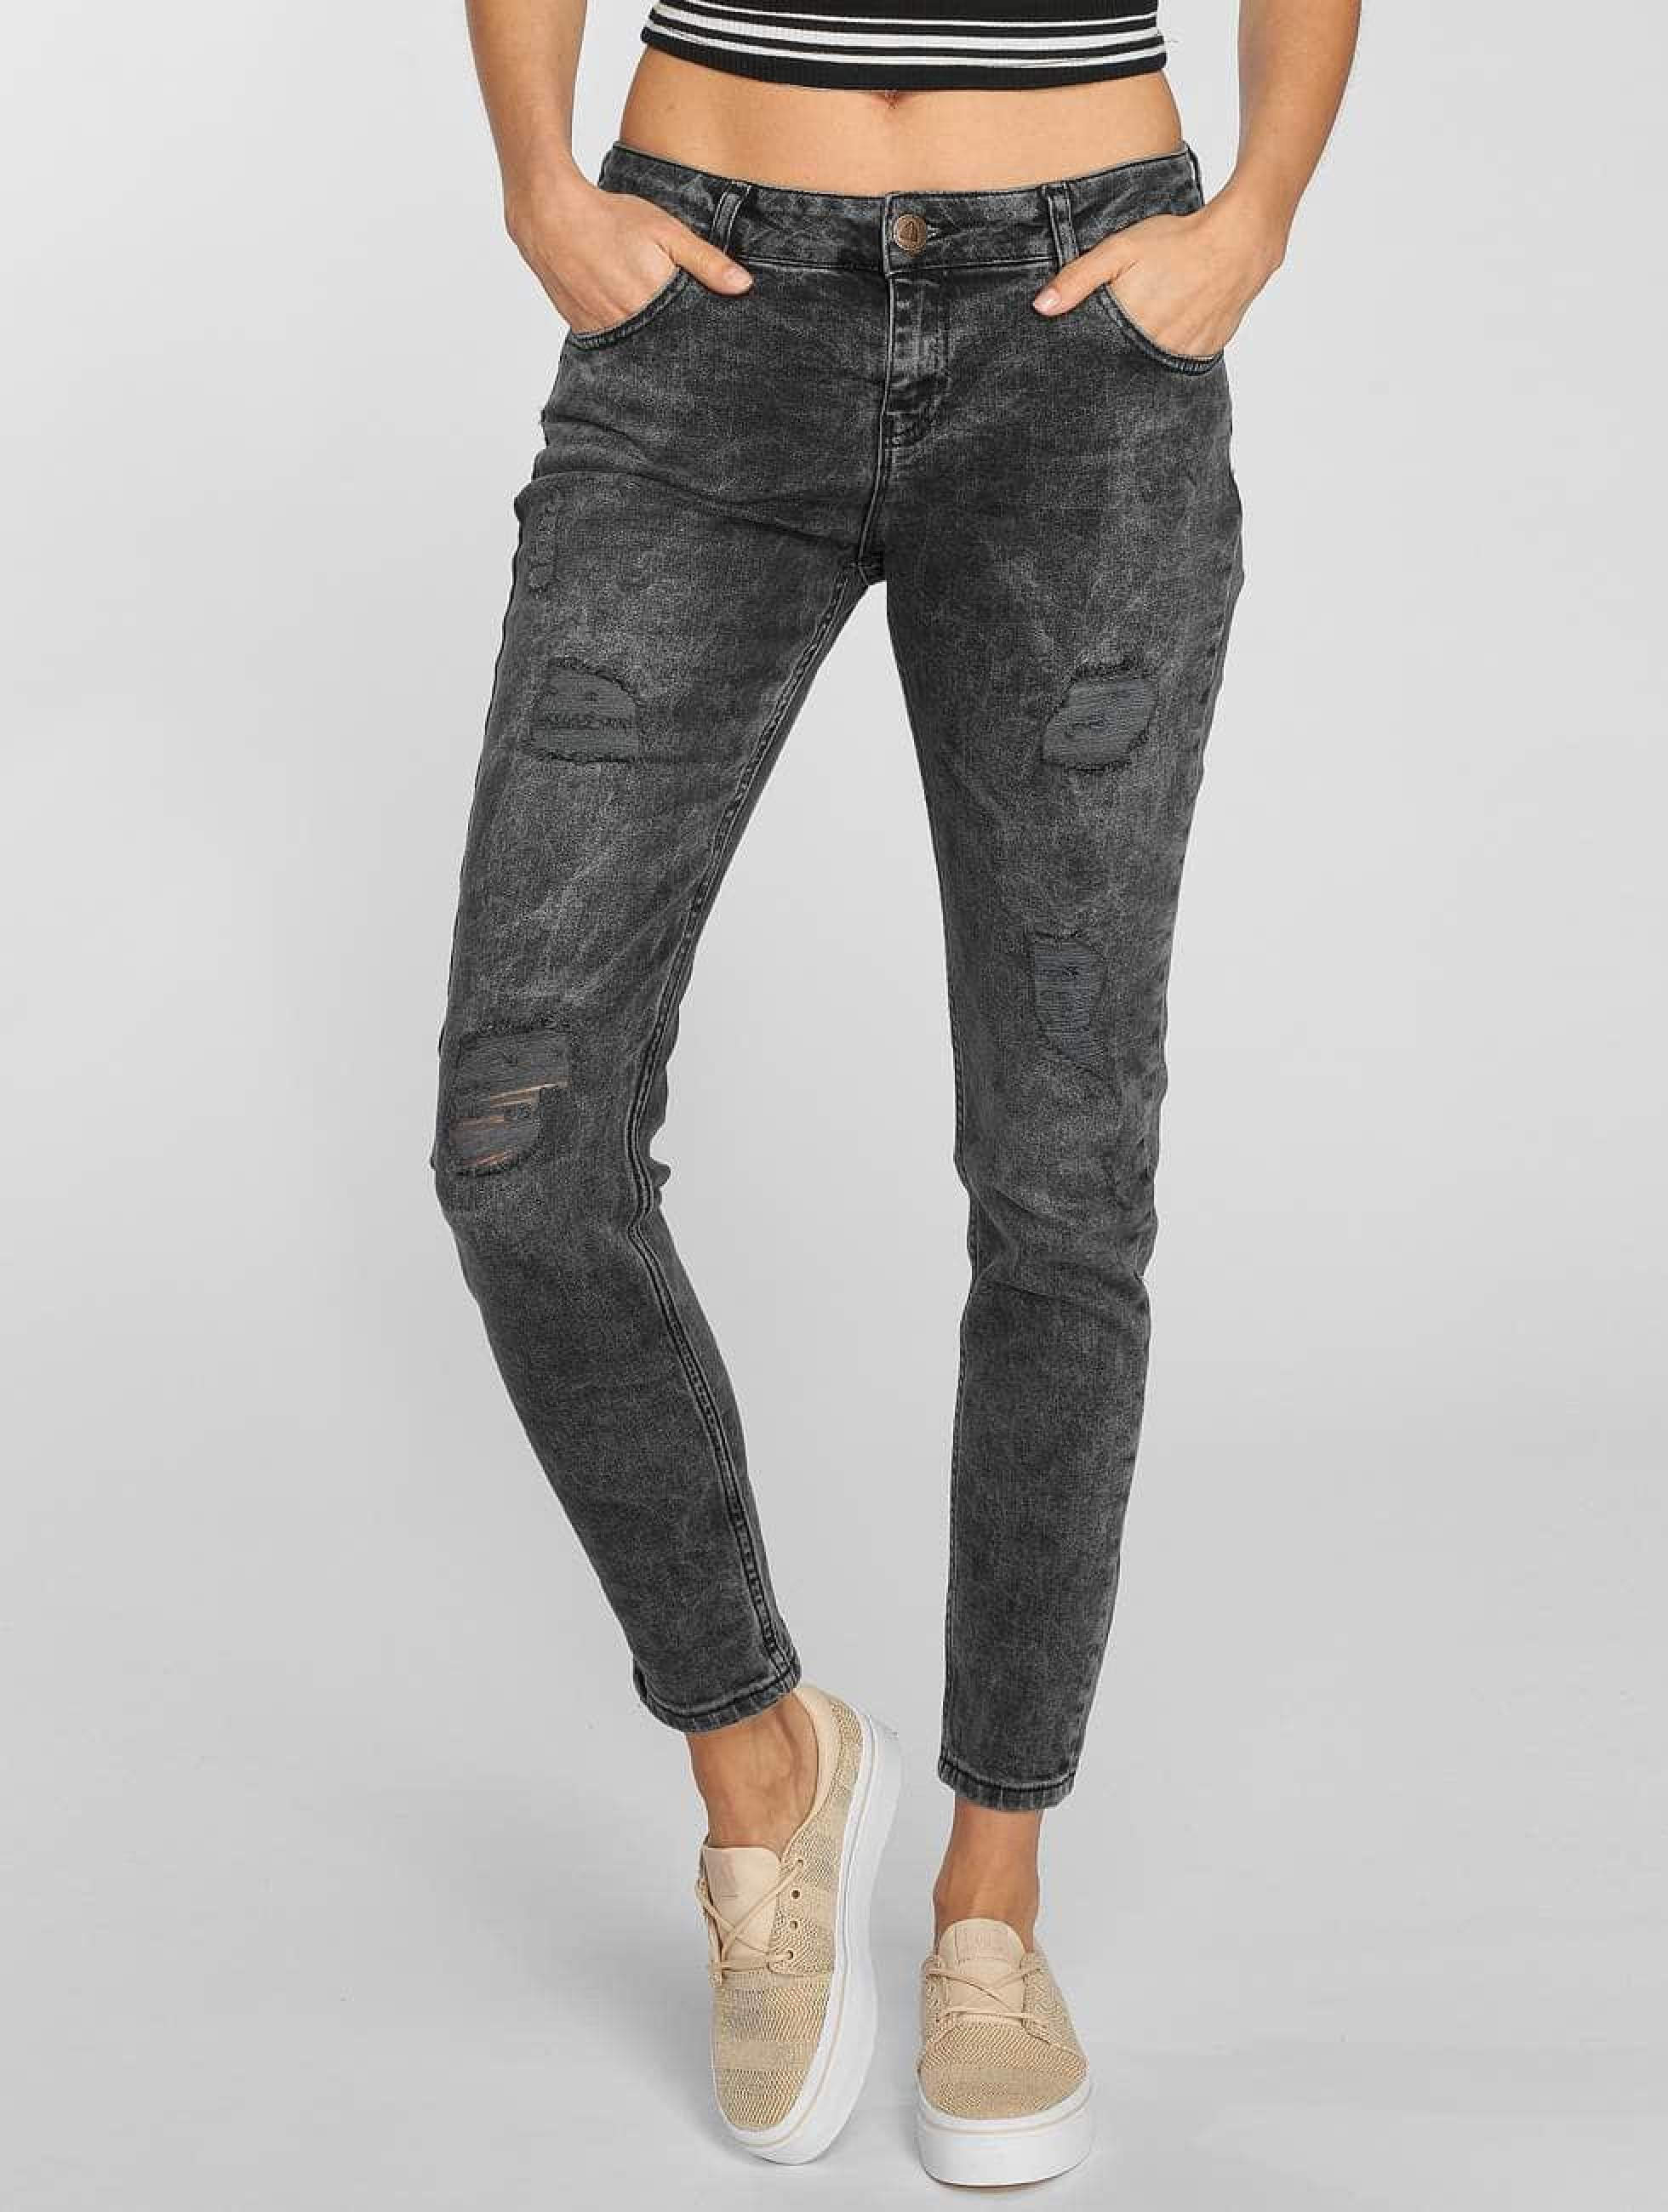 Just Rhyse / Boyfriend Jeans Bubbles in grey M